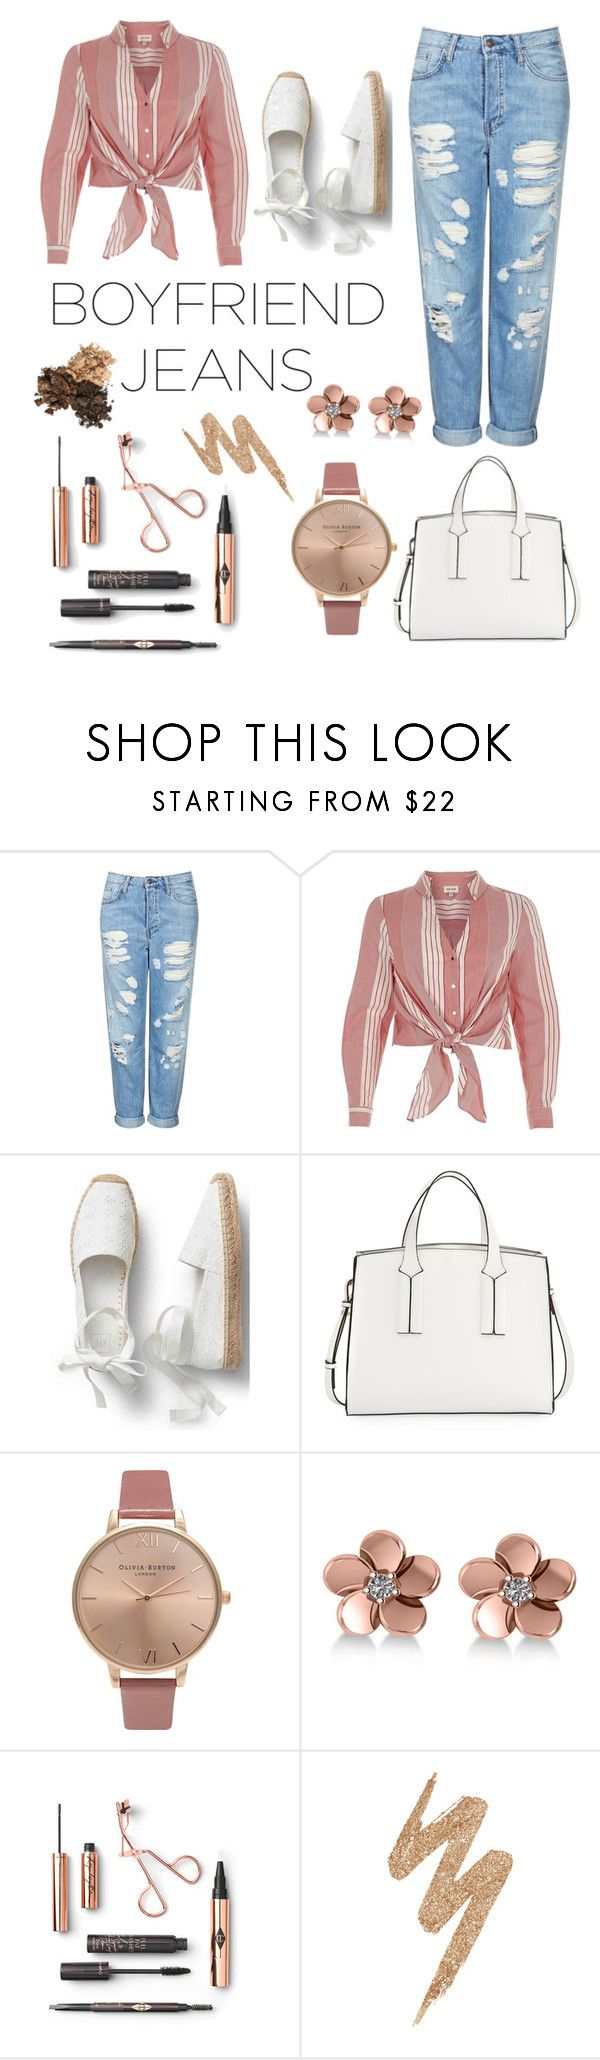 """""""Jeans jeans jeans"""" by eleni-ior ❤ liked on Polyvore featuring Topshop, River Island, French Connection, Olivia Burton, Allurez and Urban Decay"""